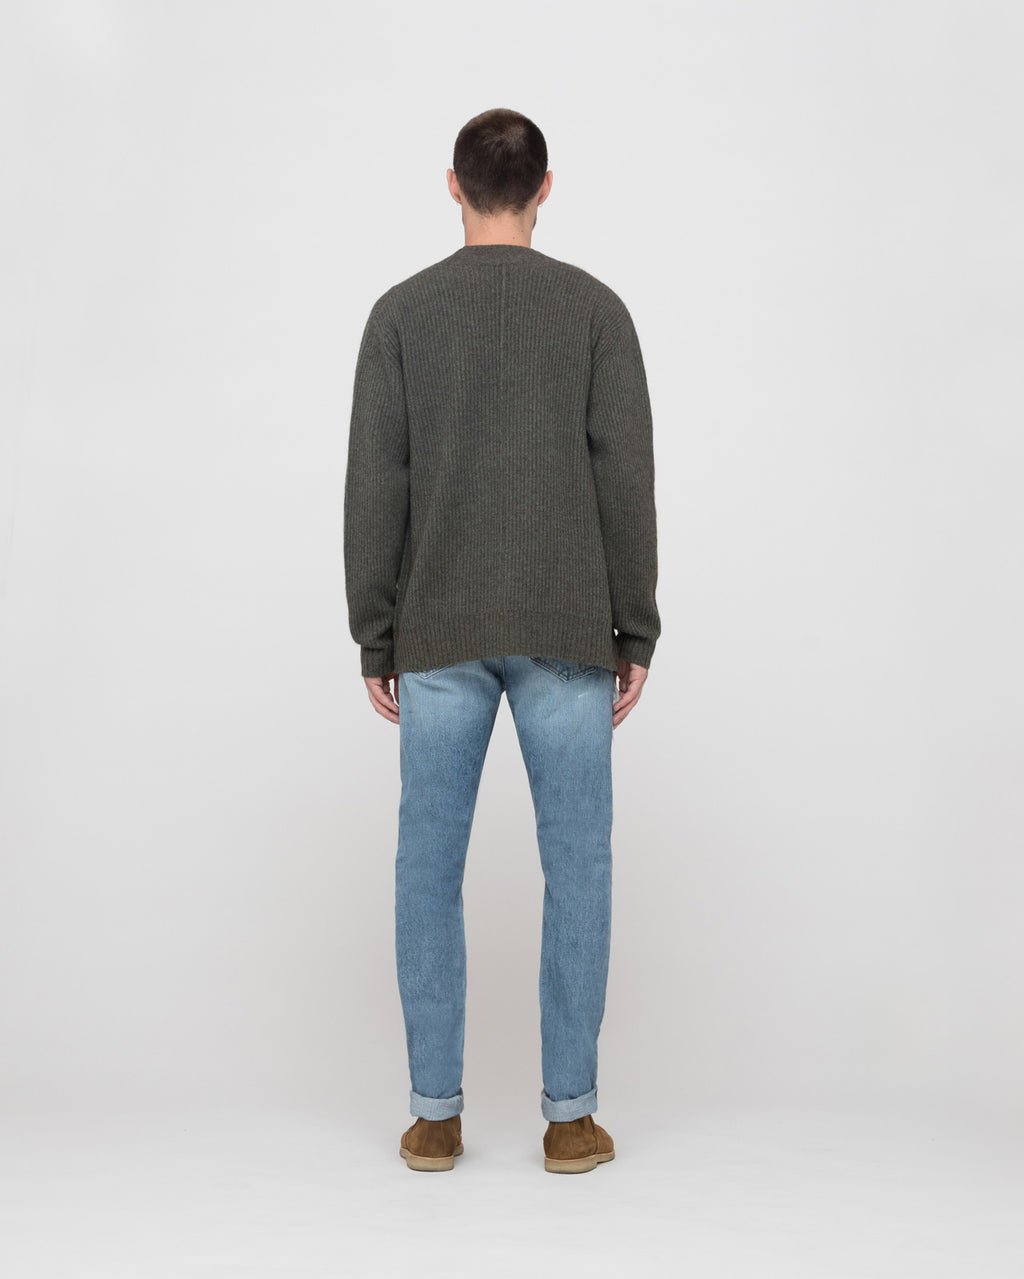 The Henley Jean in MB17